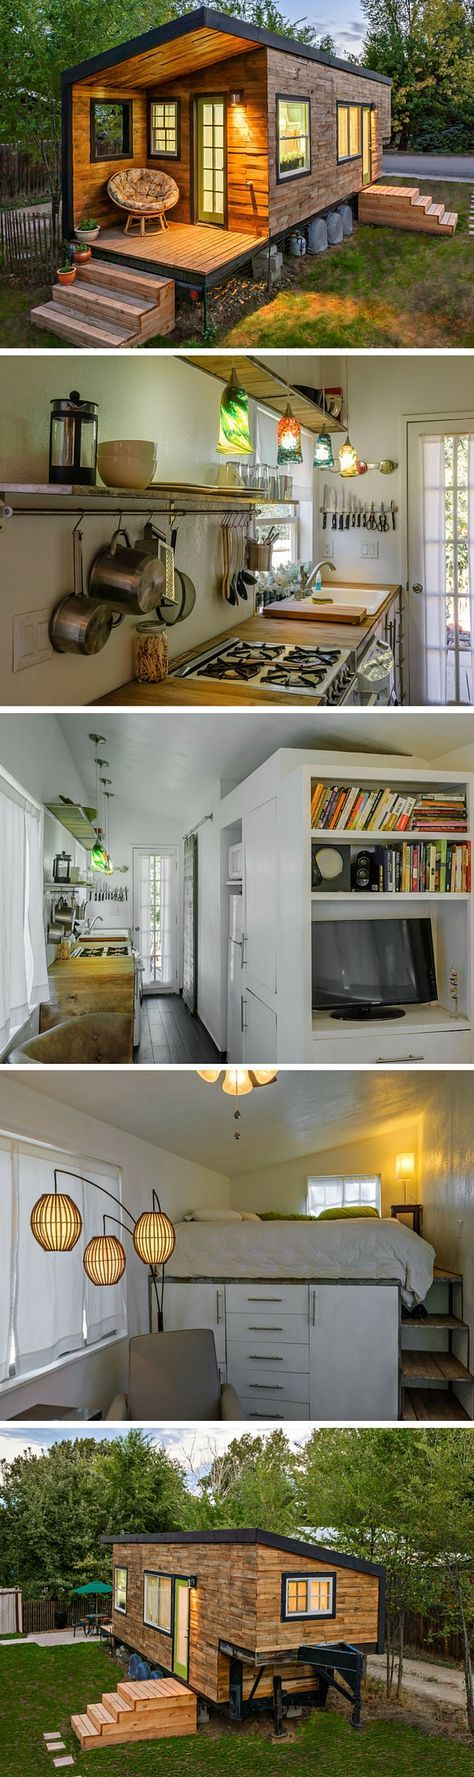 Converting sheds into livable space miniature homes and spaces - Best 25 Shed Houses Ideas On Pinterest Small Log Cabin Plans Log Homes Kits And Cheap Log Cabin Kits